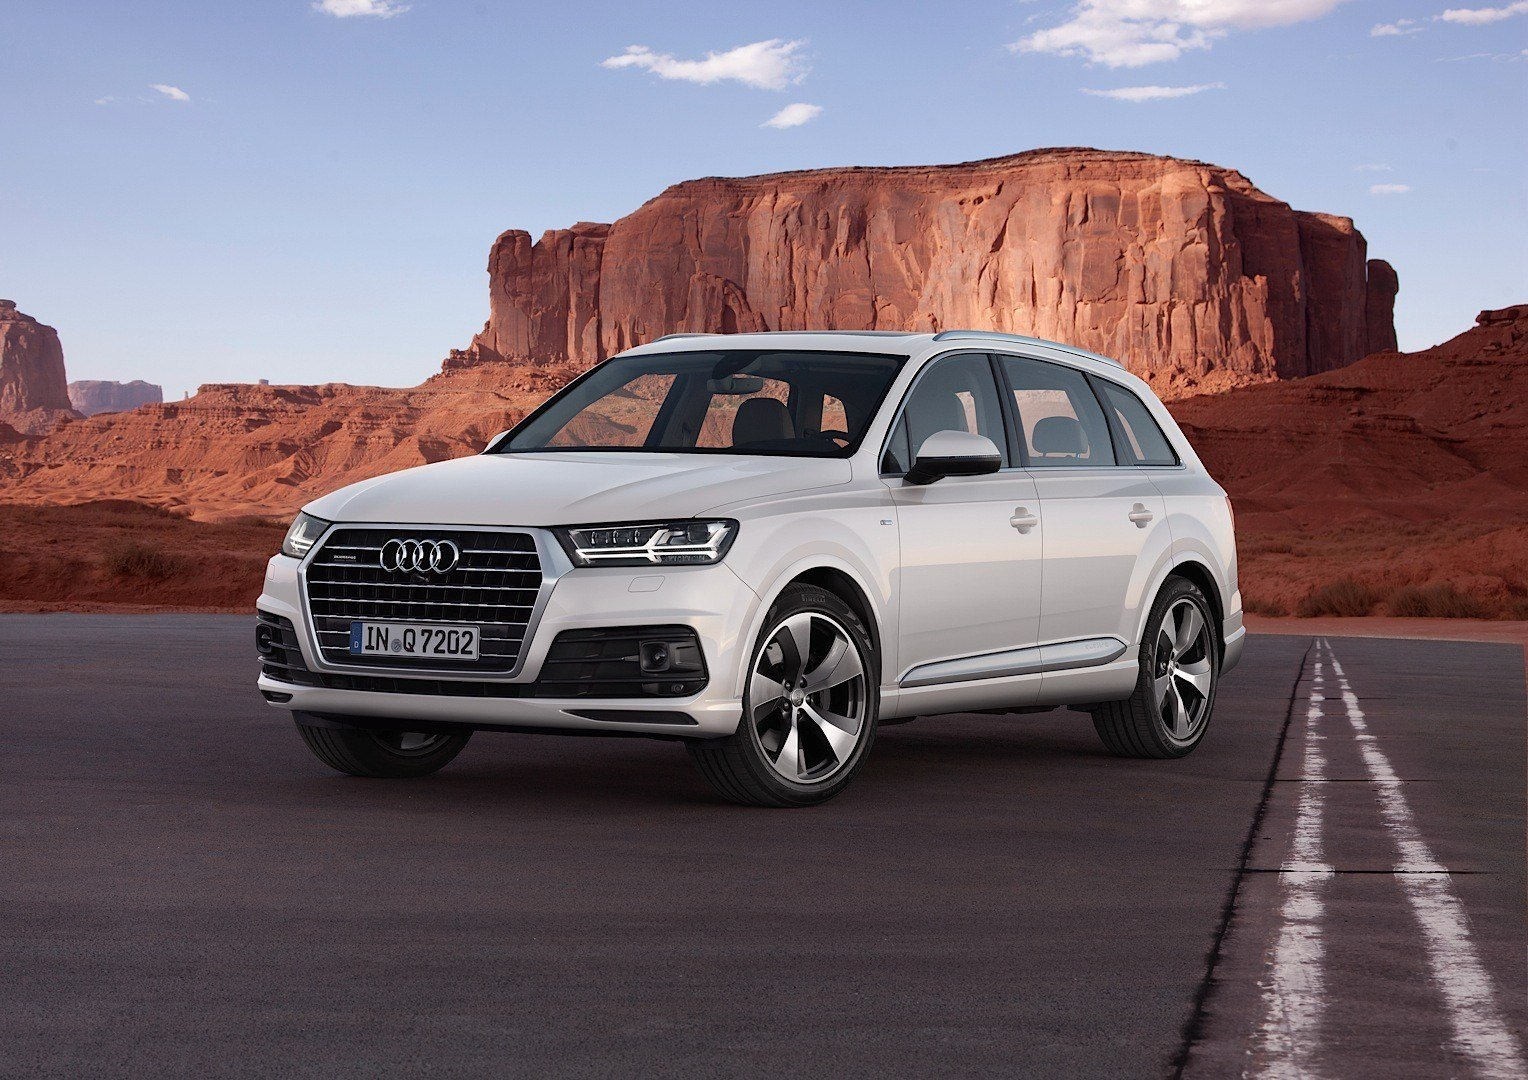 Latest Audi Shows 2015 Q7 In New Tofana White Color Reveals Free Download